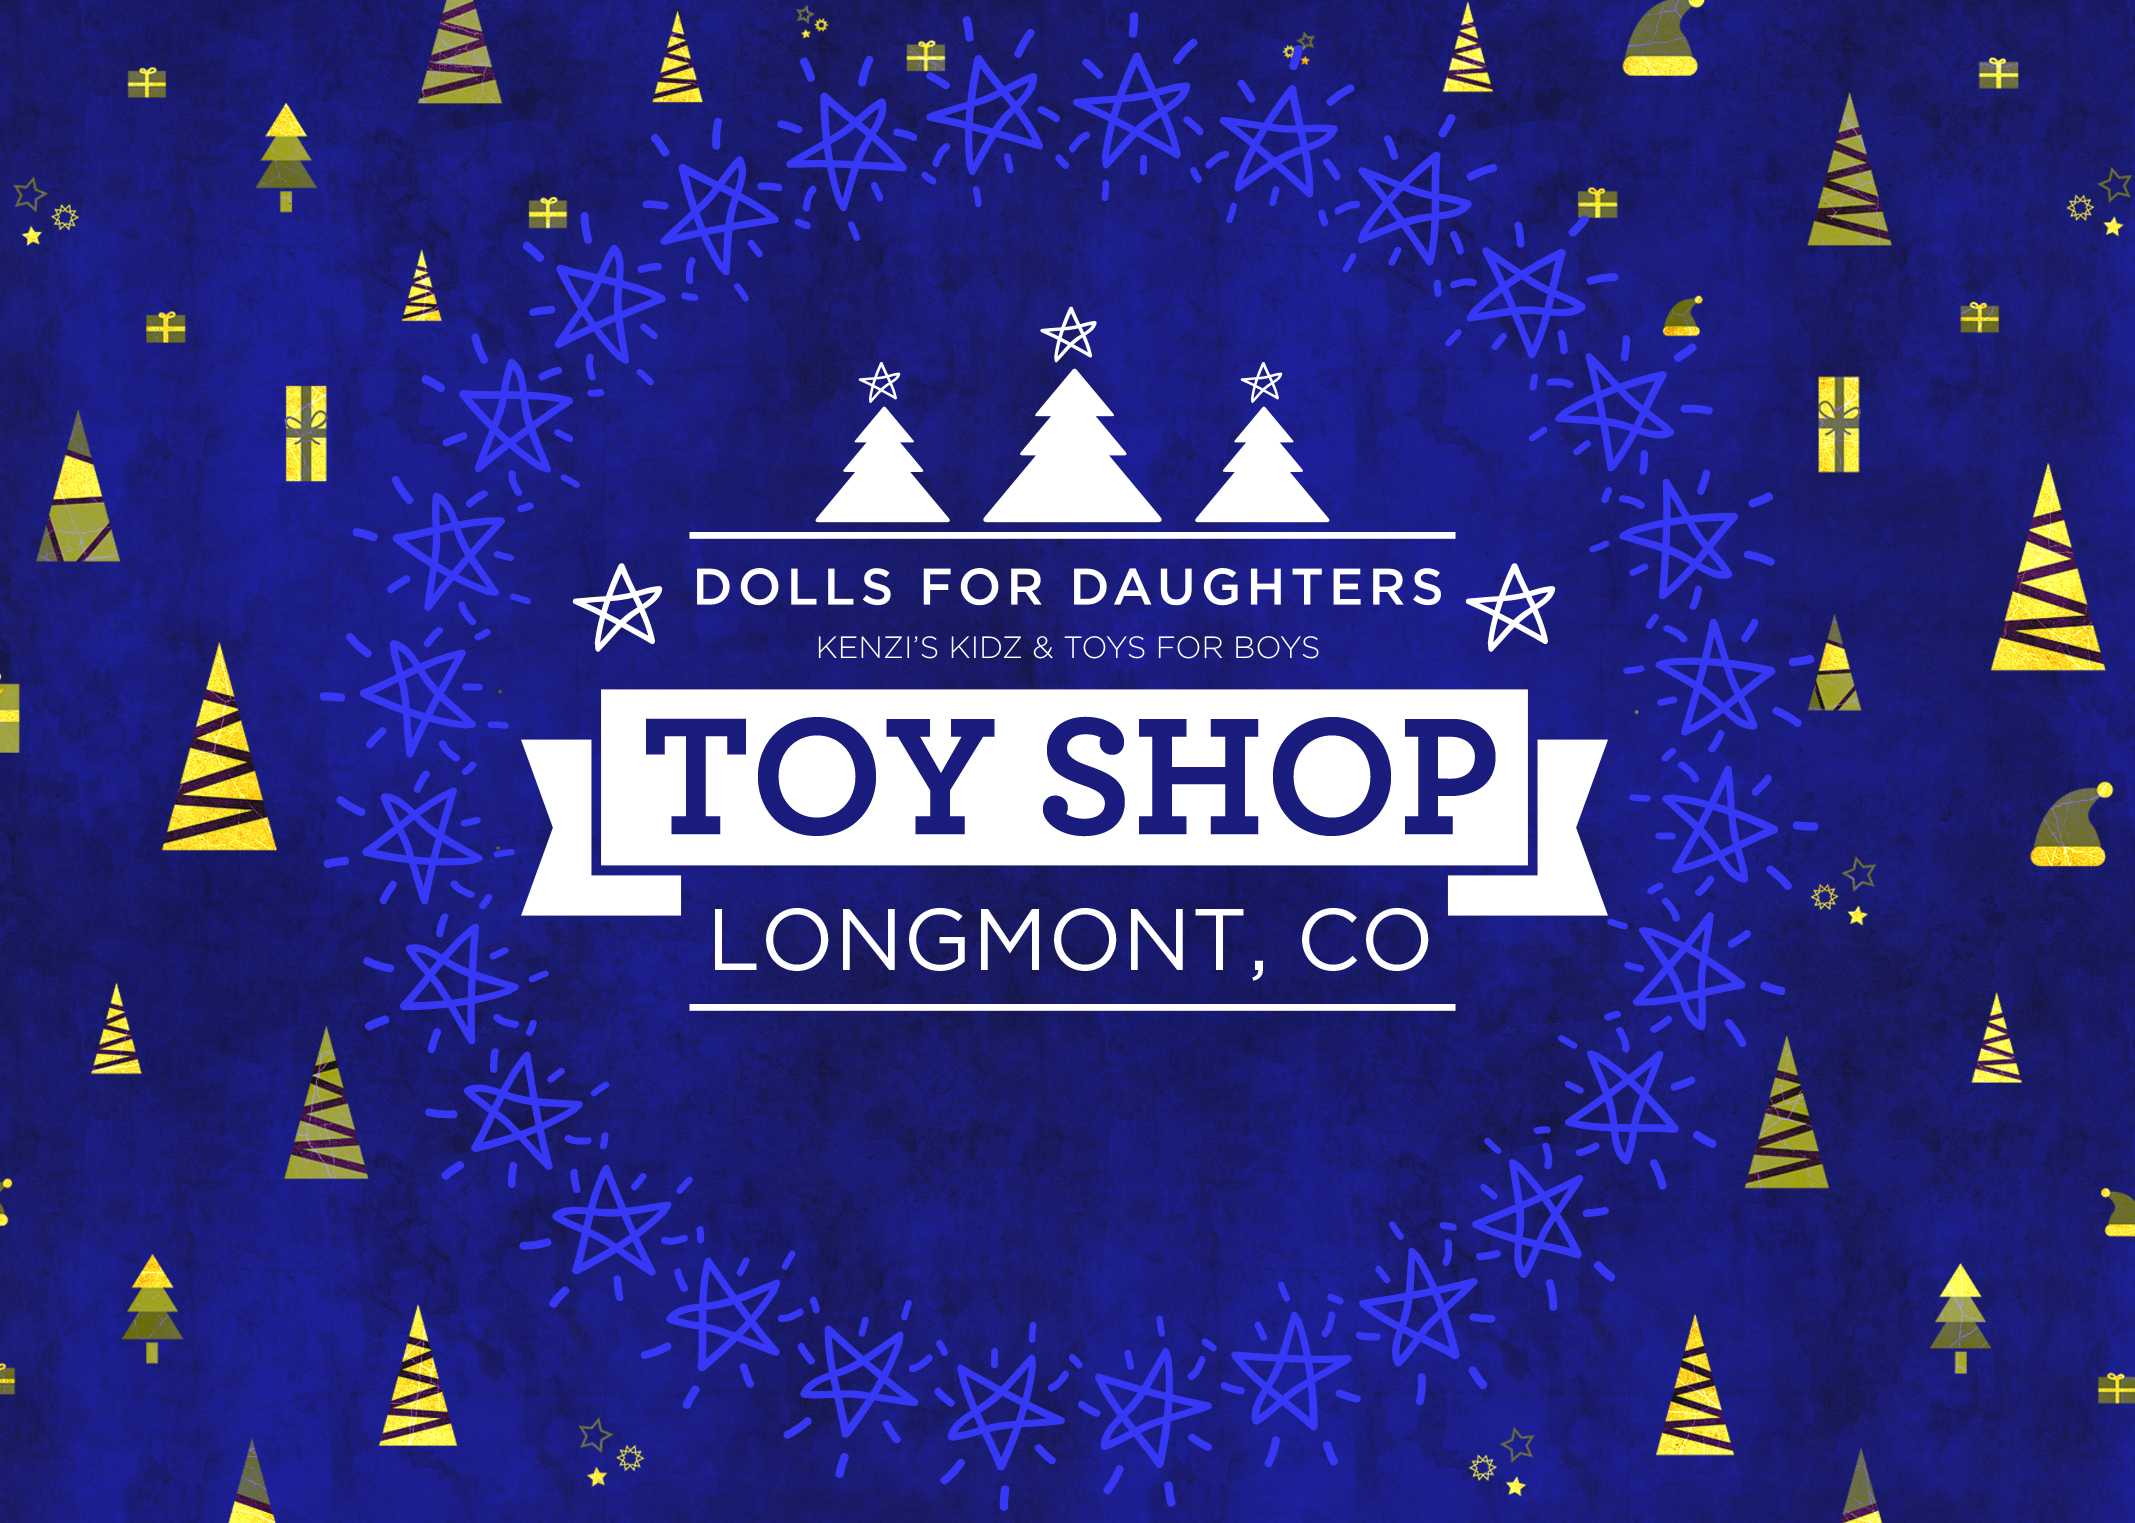 Toy Shop longmont | Dolls for Daughters